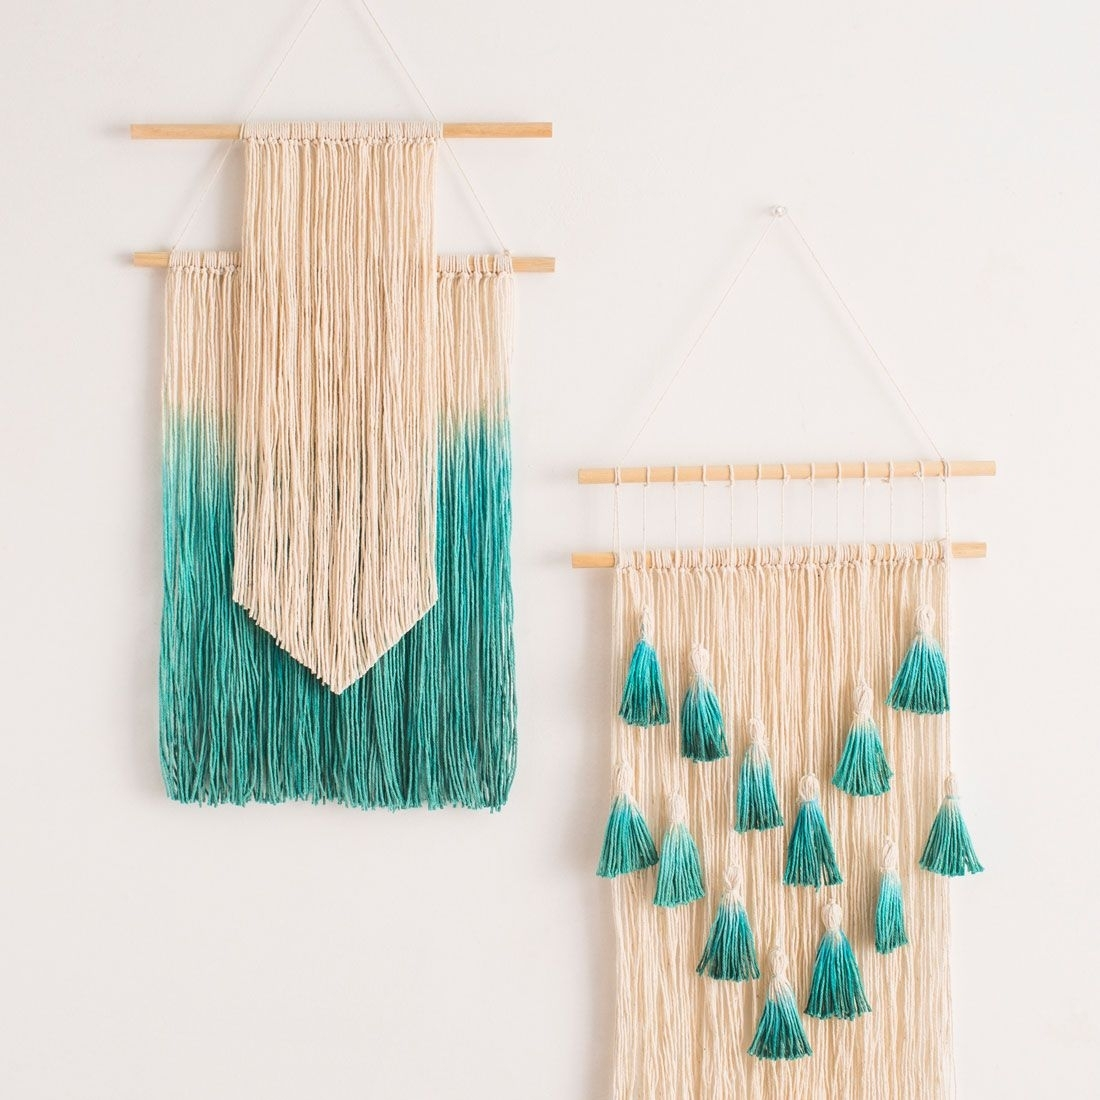 9 Diys For Your College Apartment | Diy Wall Art, Diy Wall And Inside 2018 Woven Textile Wall Art (Gallery 8 of 15)